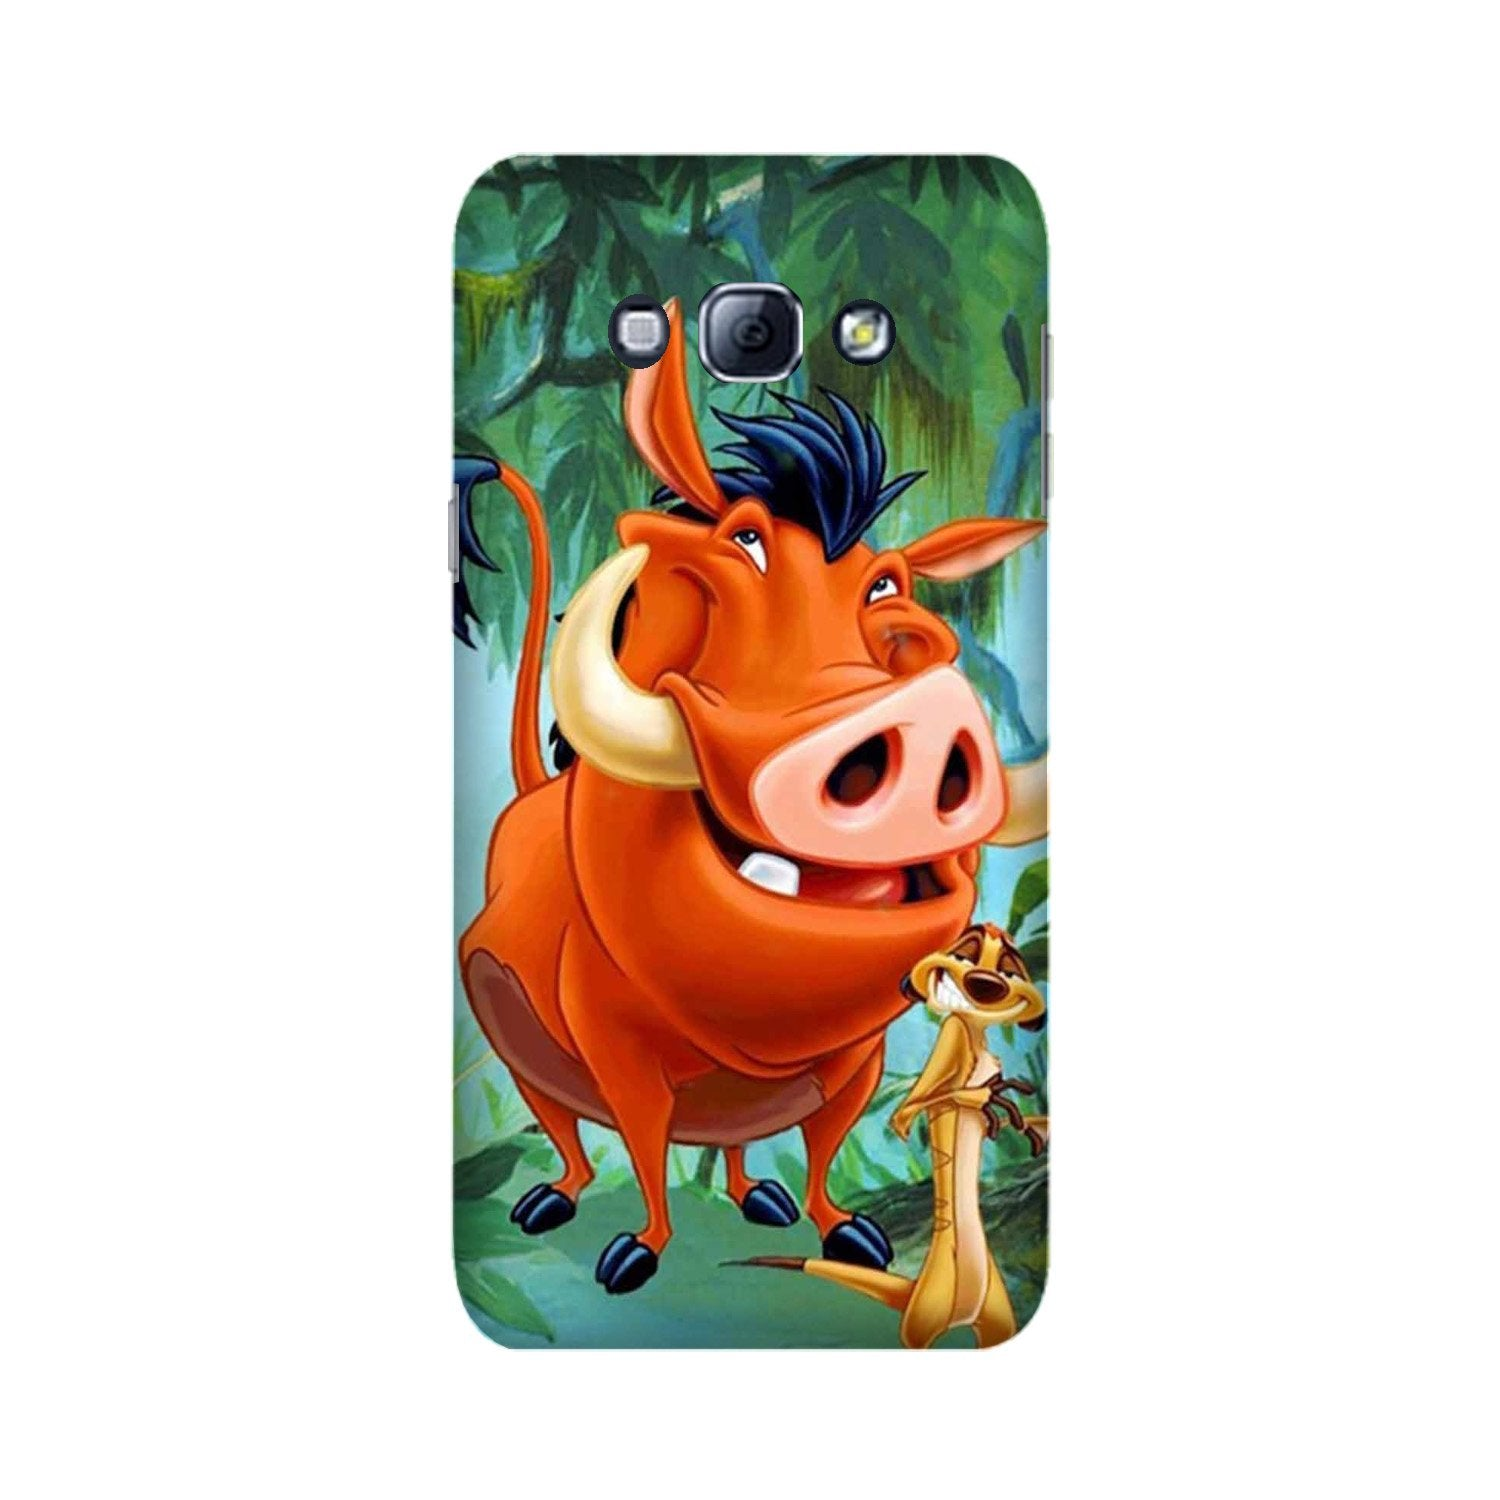 Timon and Pumbaa Mobile Back Case for Galaxy A8 (2015)  (Design - 305)